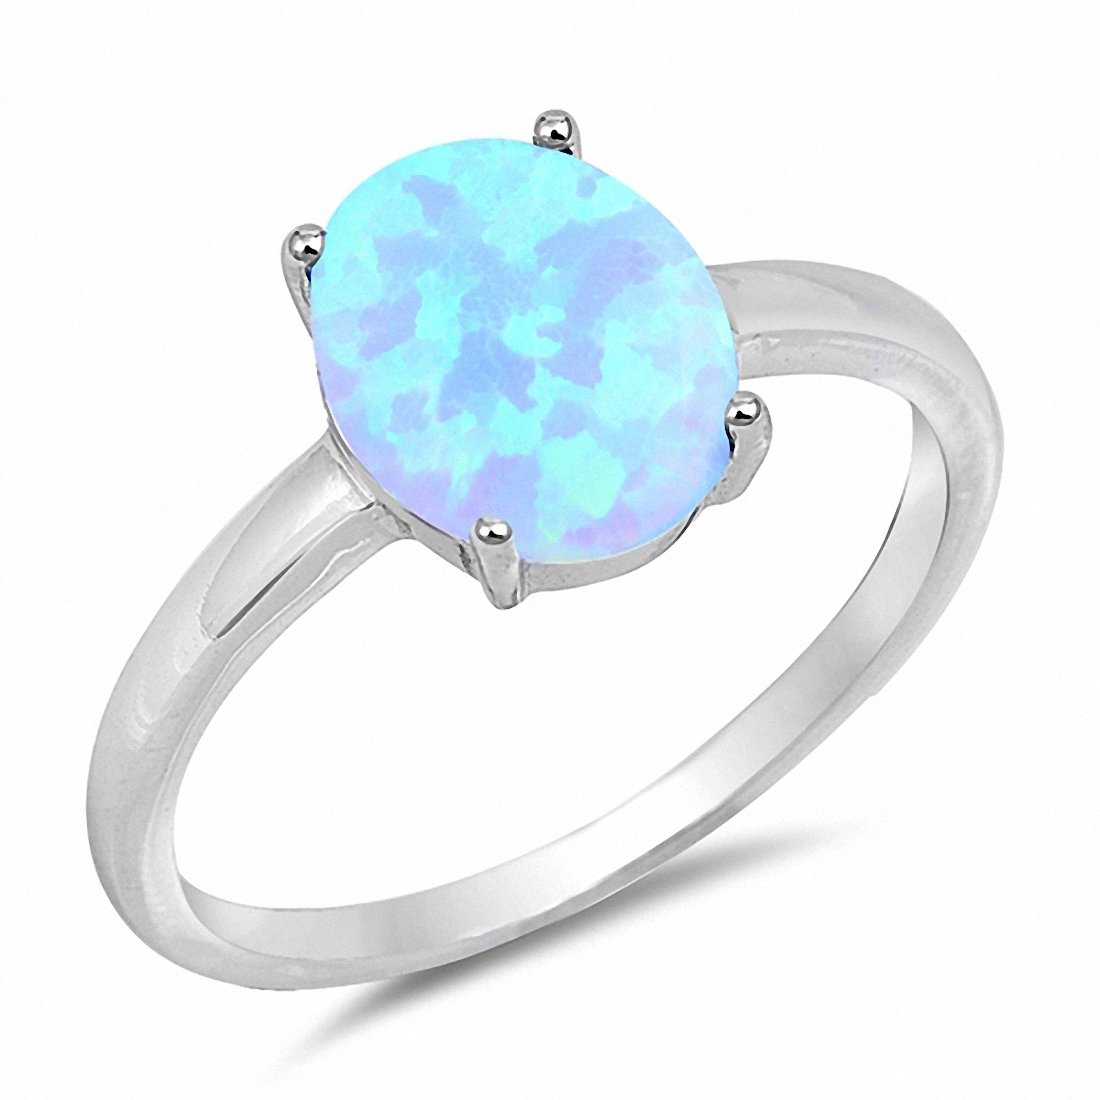 Fashion Solitaire Ring Oval Lab Created Light Blue Opal 925 Sterling Silver Choose Color